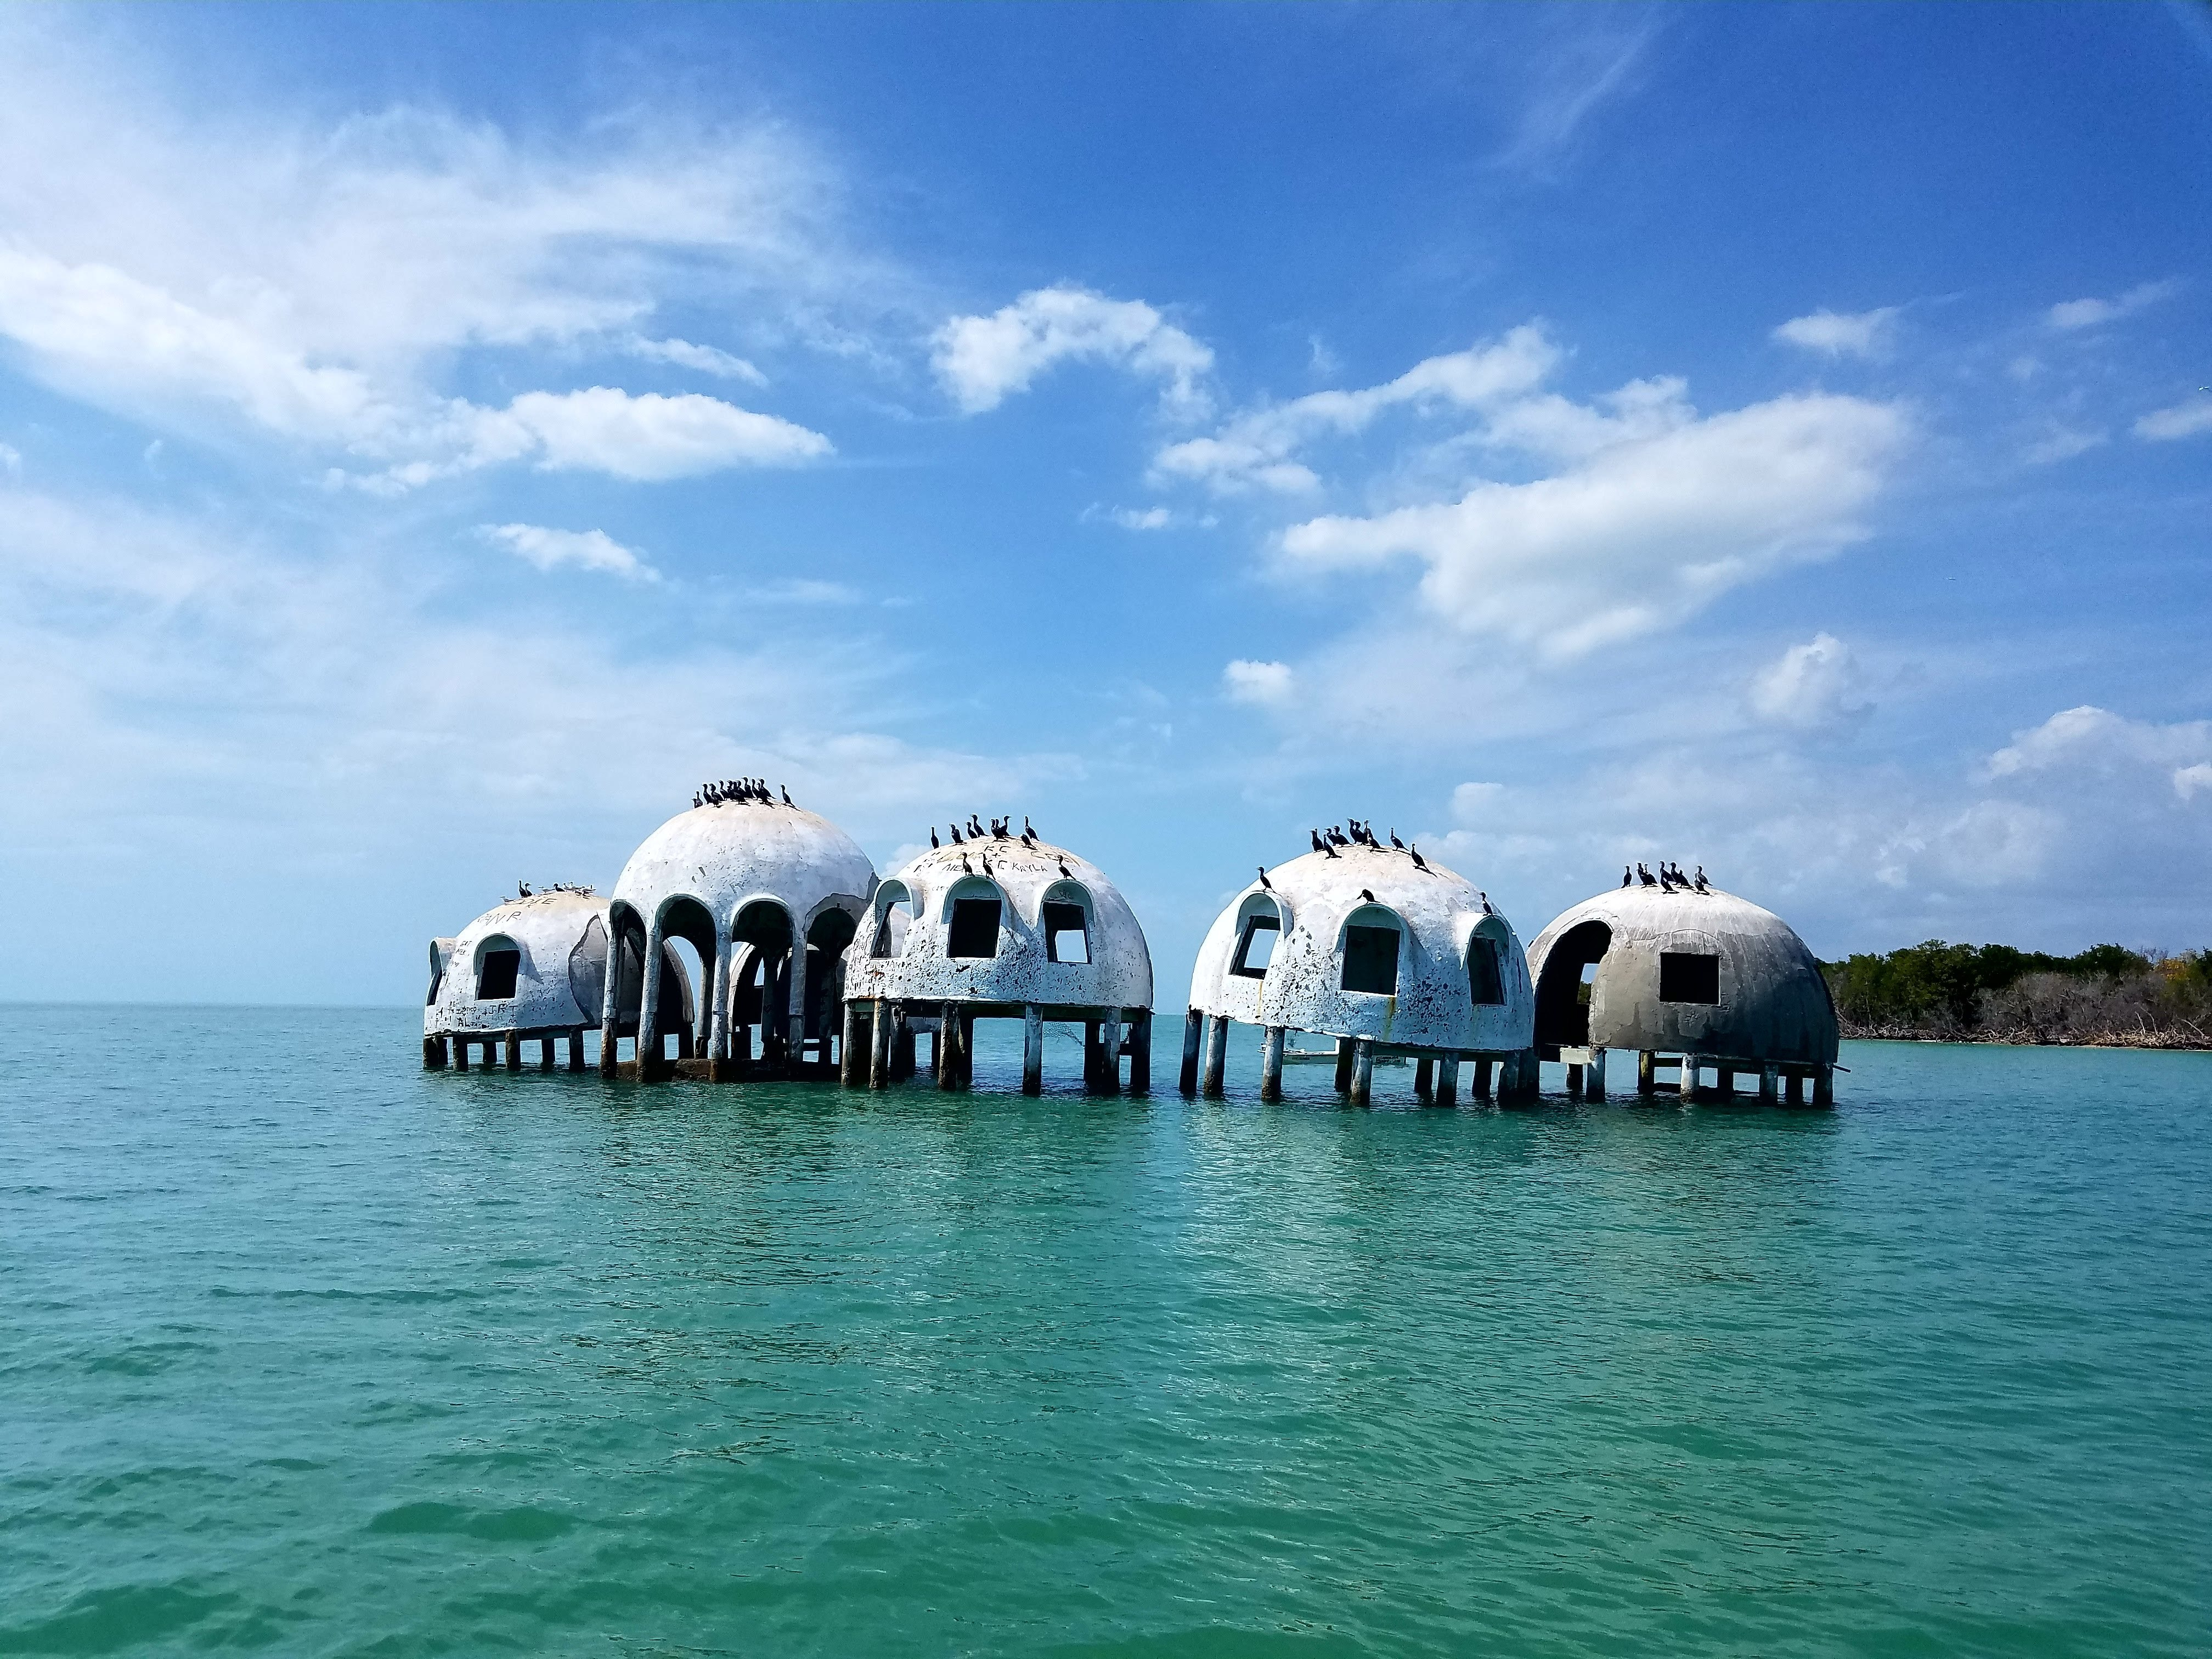 Disappearing dome homes are casualty of eroding beaches